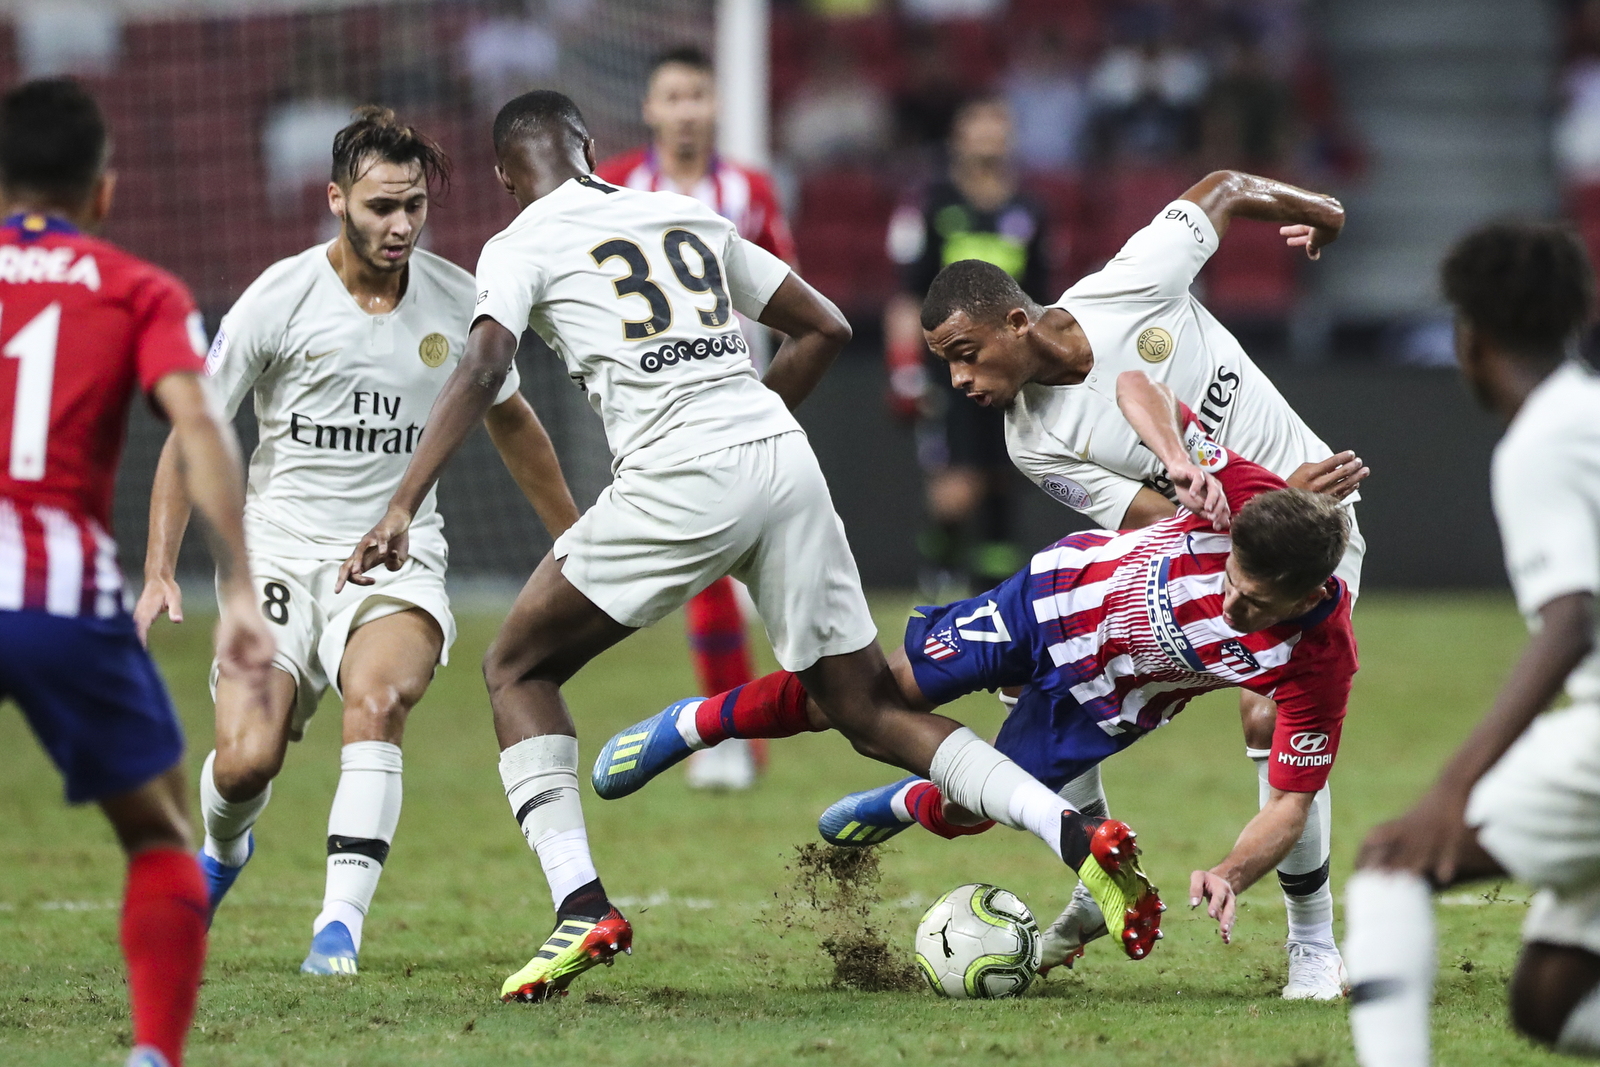 Atletico Madrid's Luciano Vietto falls after a tackle by Paris Saint-Germain's Antoine Bernede, right, and Moussa Sissako during the International Champions Cup match between Paris Saint-Germain and Atletico Madrid in Singapore, Monday, July 30, 2018. (AP Photo/Yong Teck Lim)